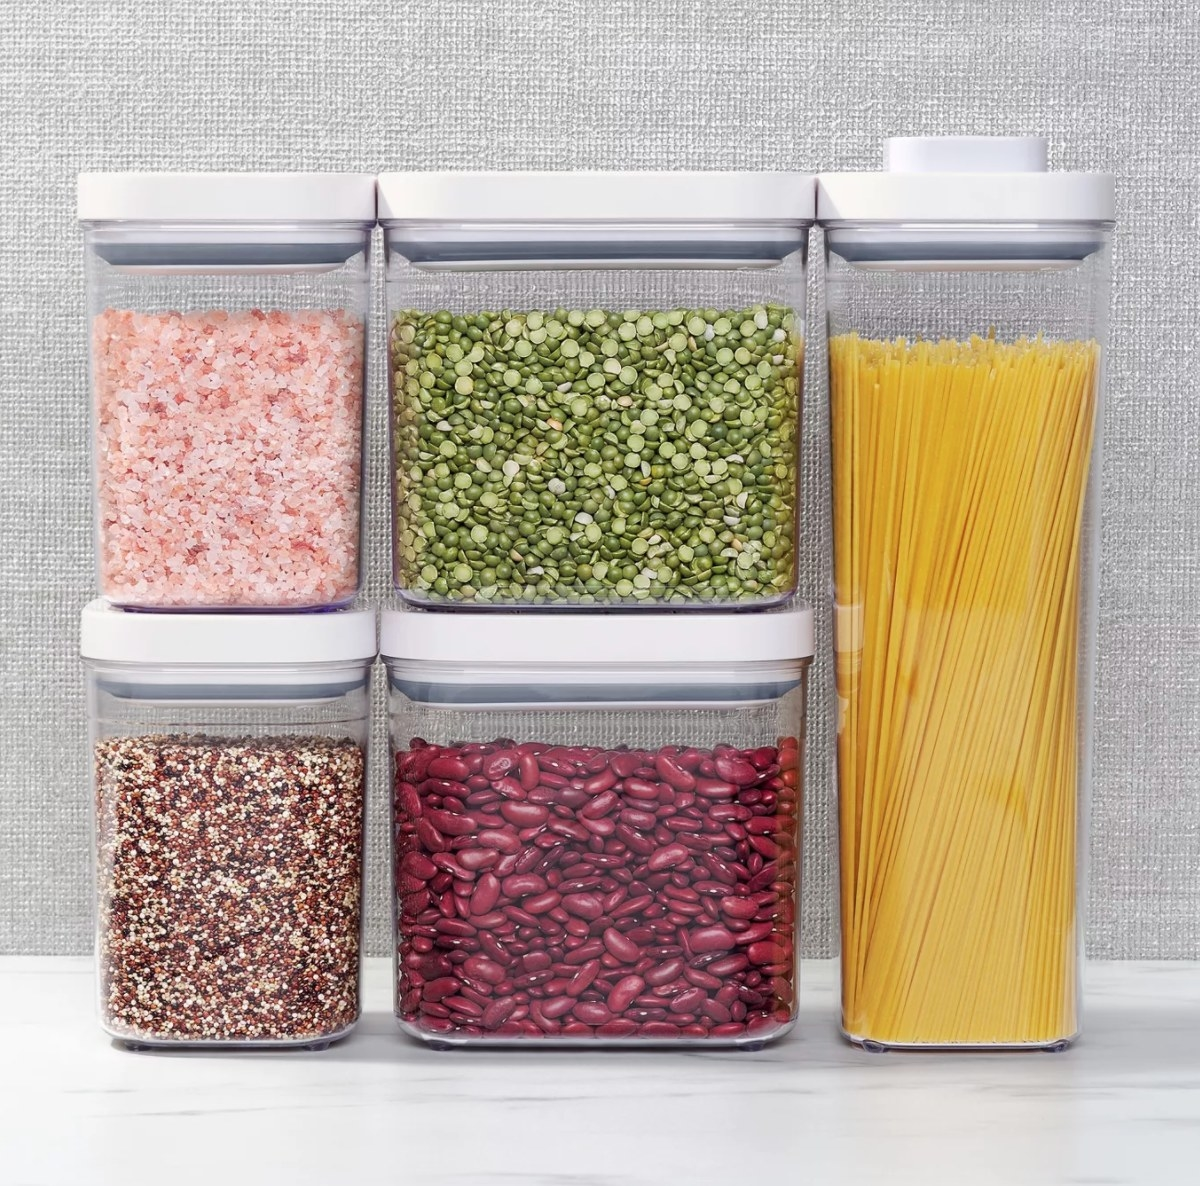 The Oxo containers